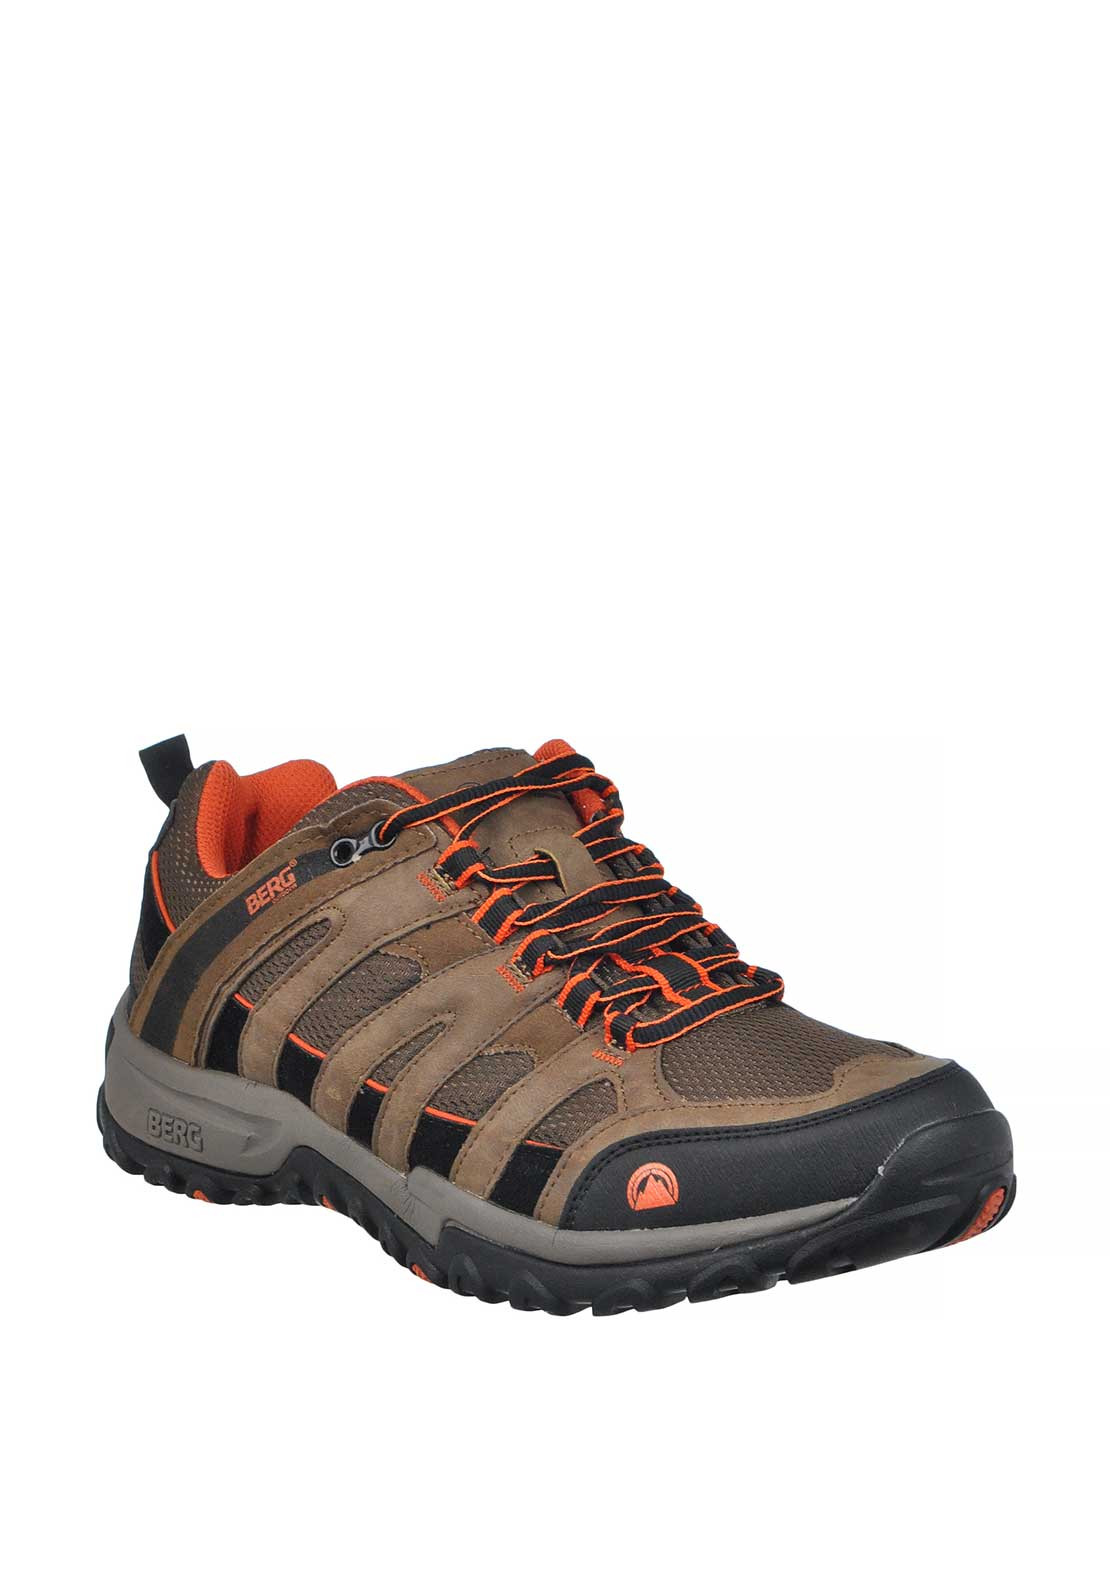 Berg Outdoor Mens Elements Meerkat Lace Up Trainer, Brown Multi